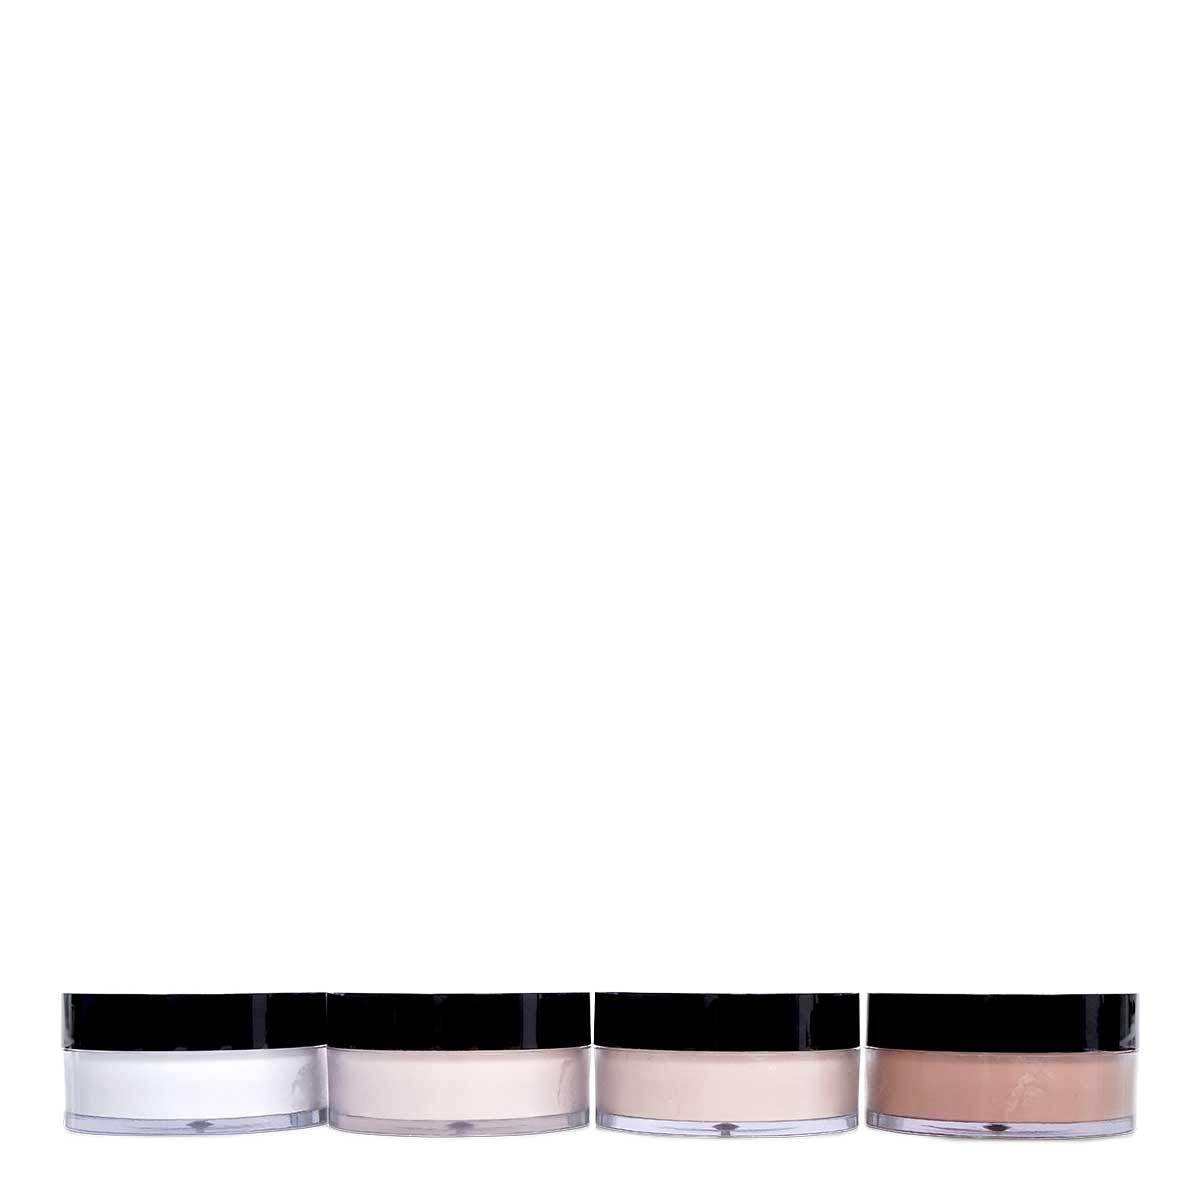 KLEANCOLOR High Definition Loose Matte Setting Powder (PP2870) - Display of 24 units